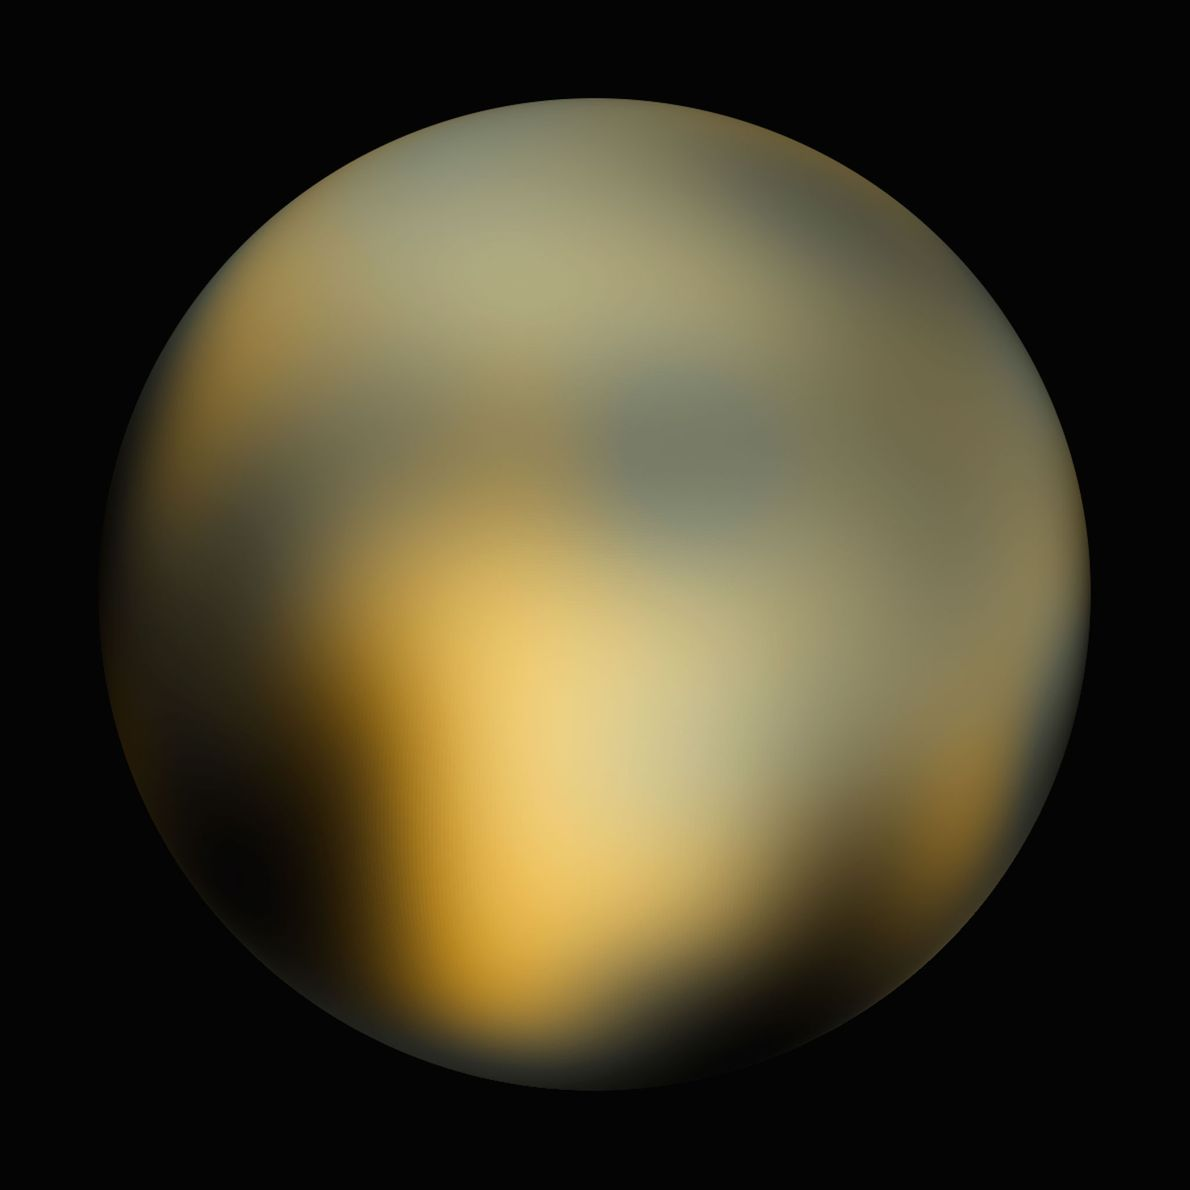 In 2010, an analysis of Hubble images revealed a mottled world of orange, white, and black. ...